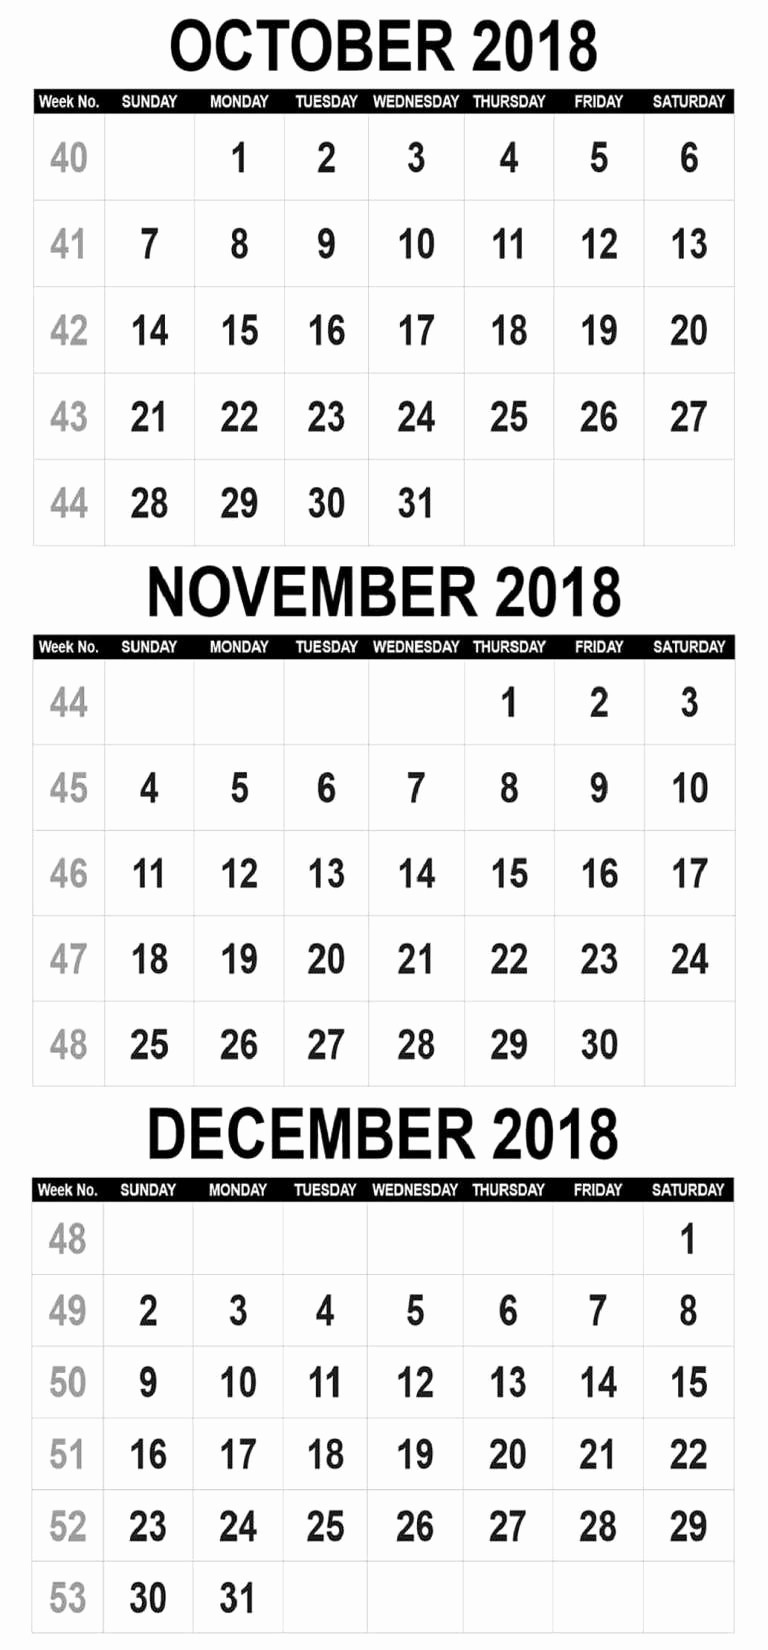 October 2018 Printable Calendar Word Fresh Editable October 2018 Calendar Word